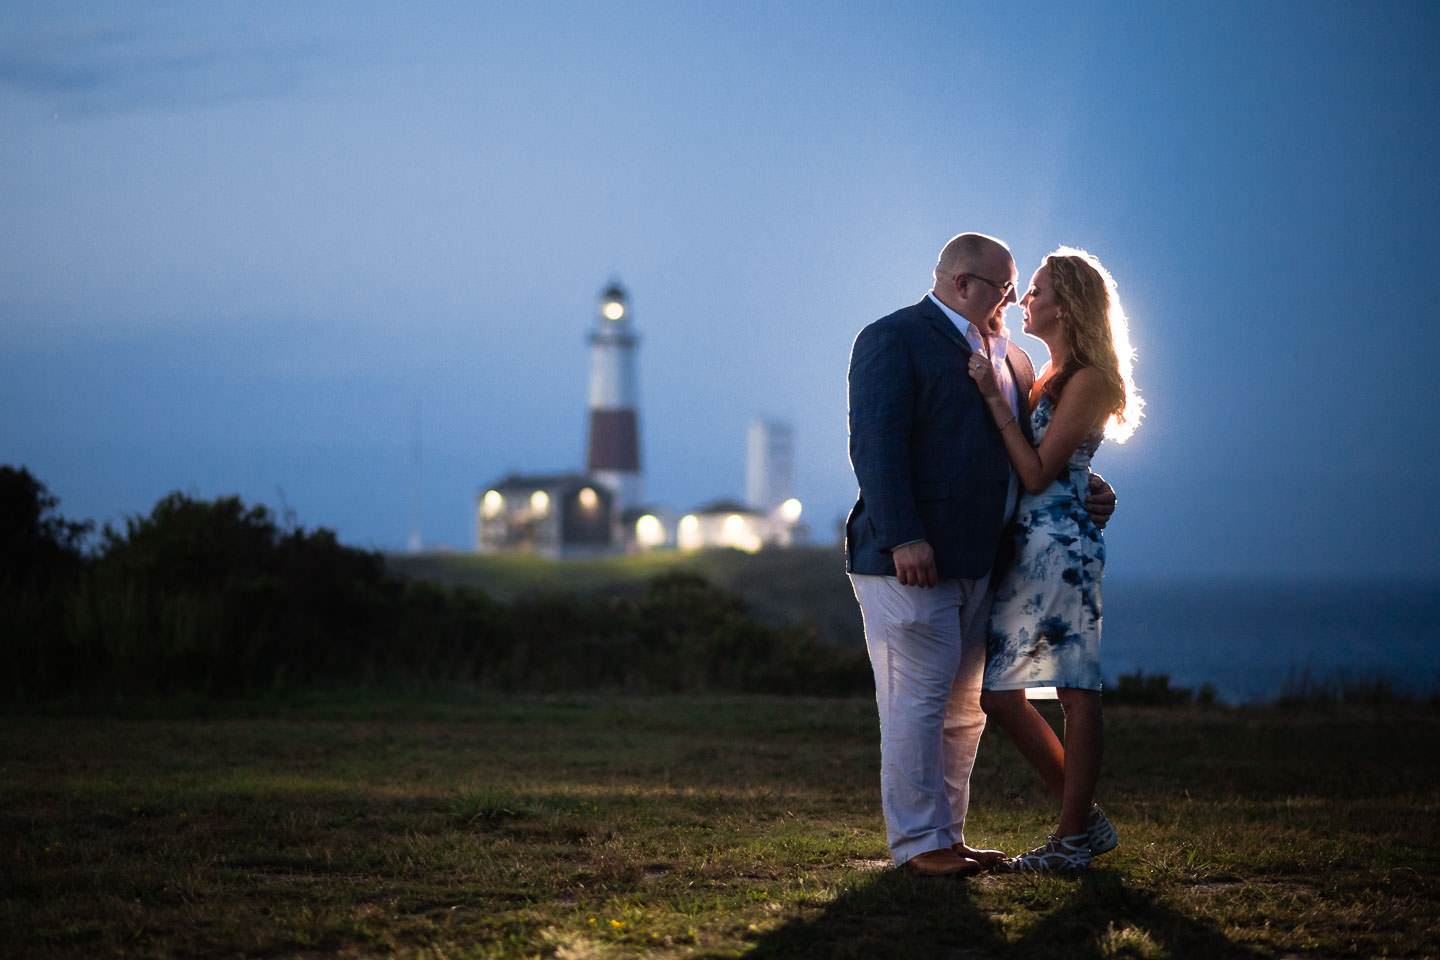 engagement session after sunset by montauk lighthouse with creative lighting